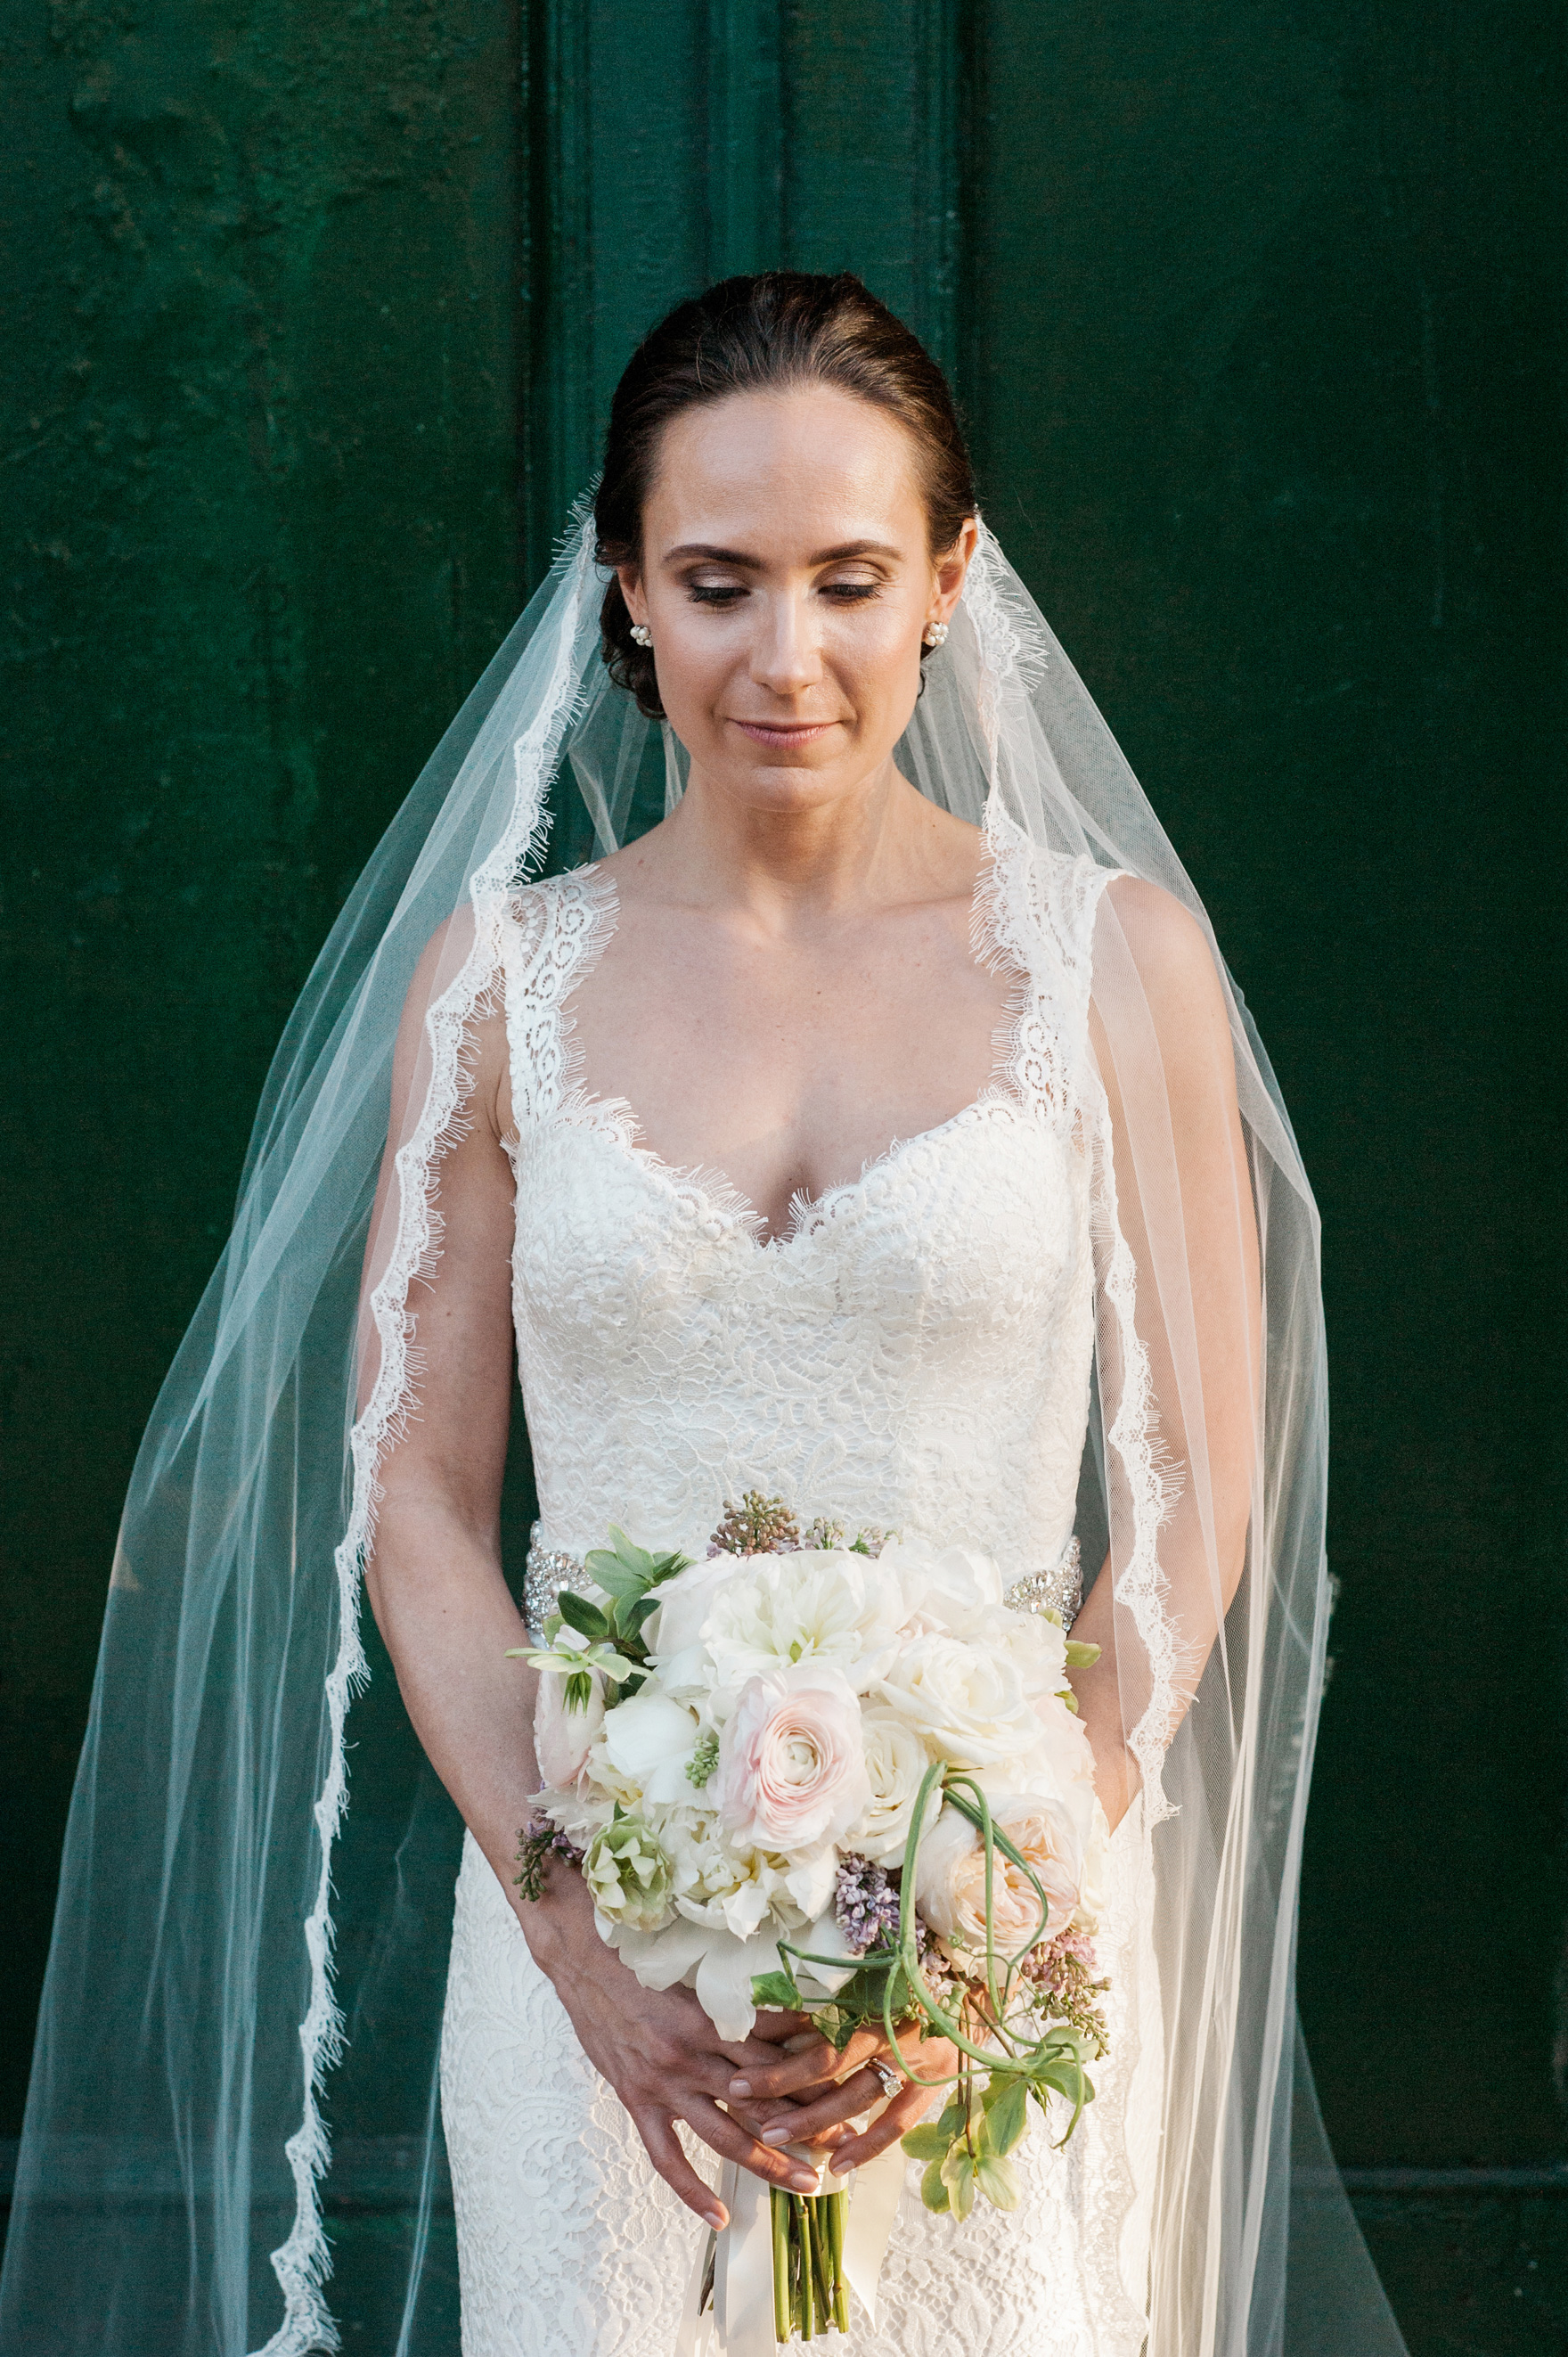 Williamsburg New York Fine Art Wedding by Christina Lilly Photography053